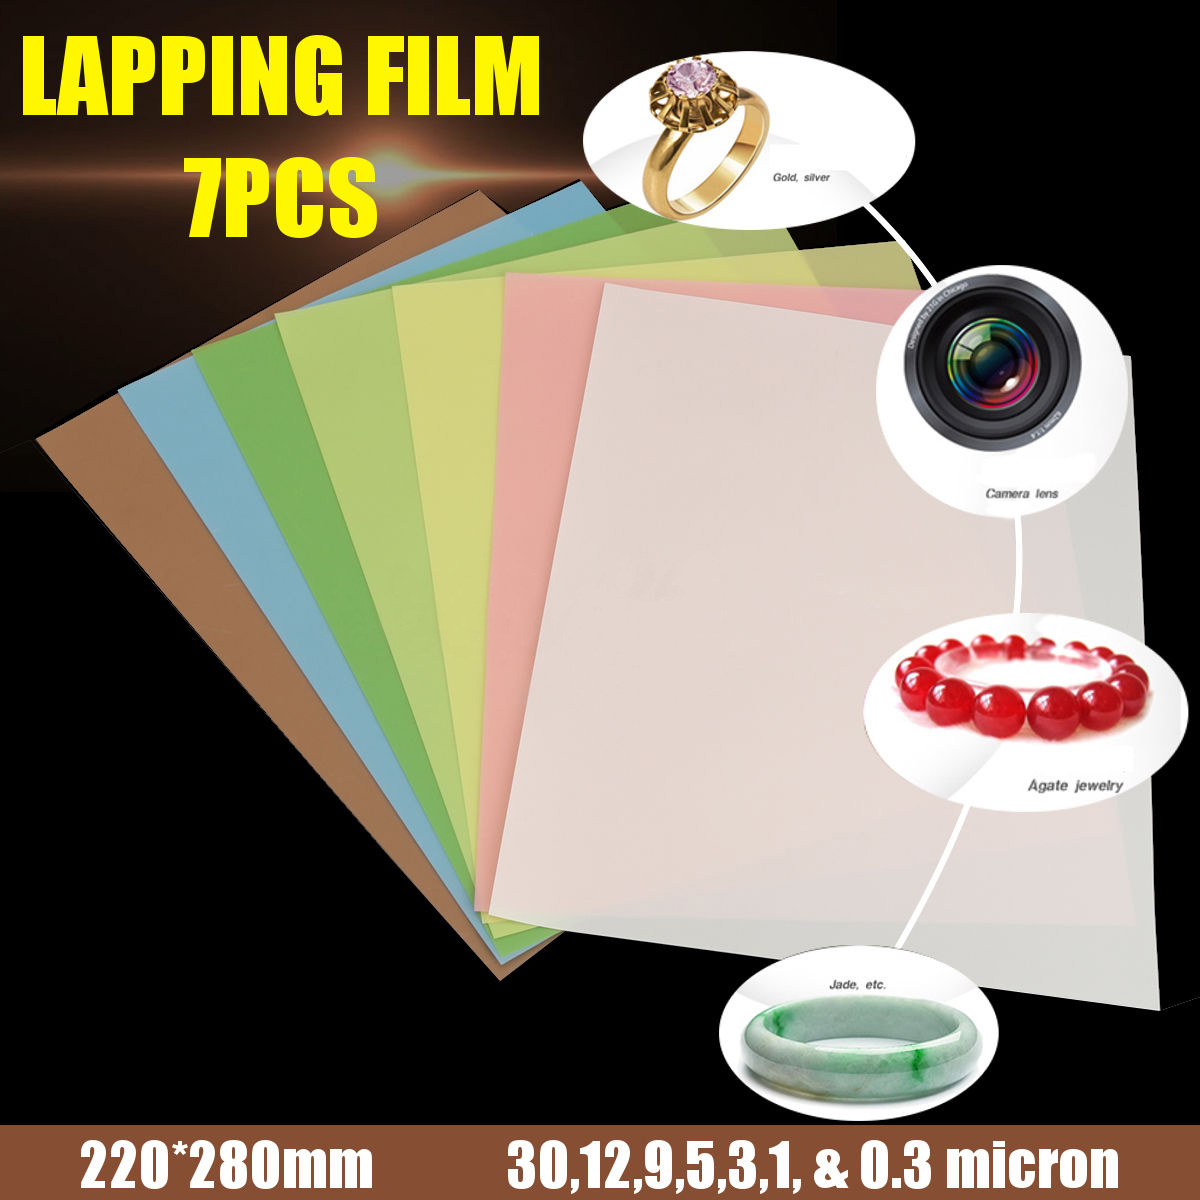 7pcs 280x220mm Lapping Film…